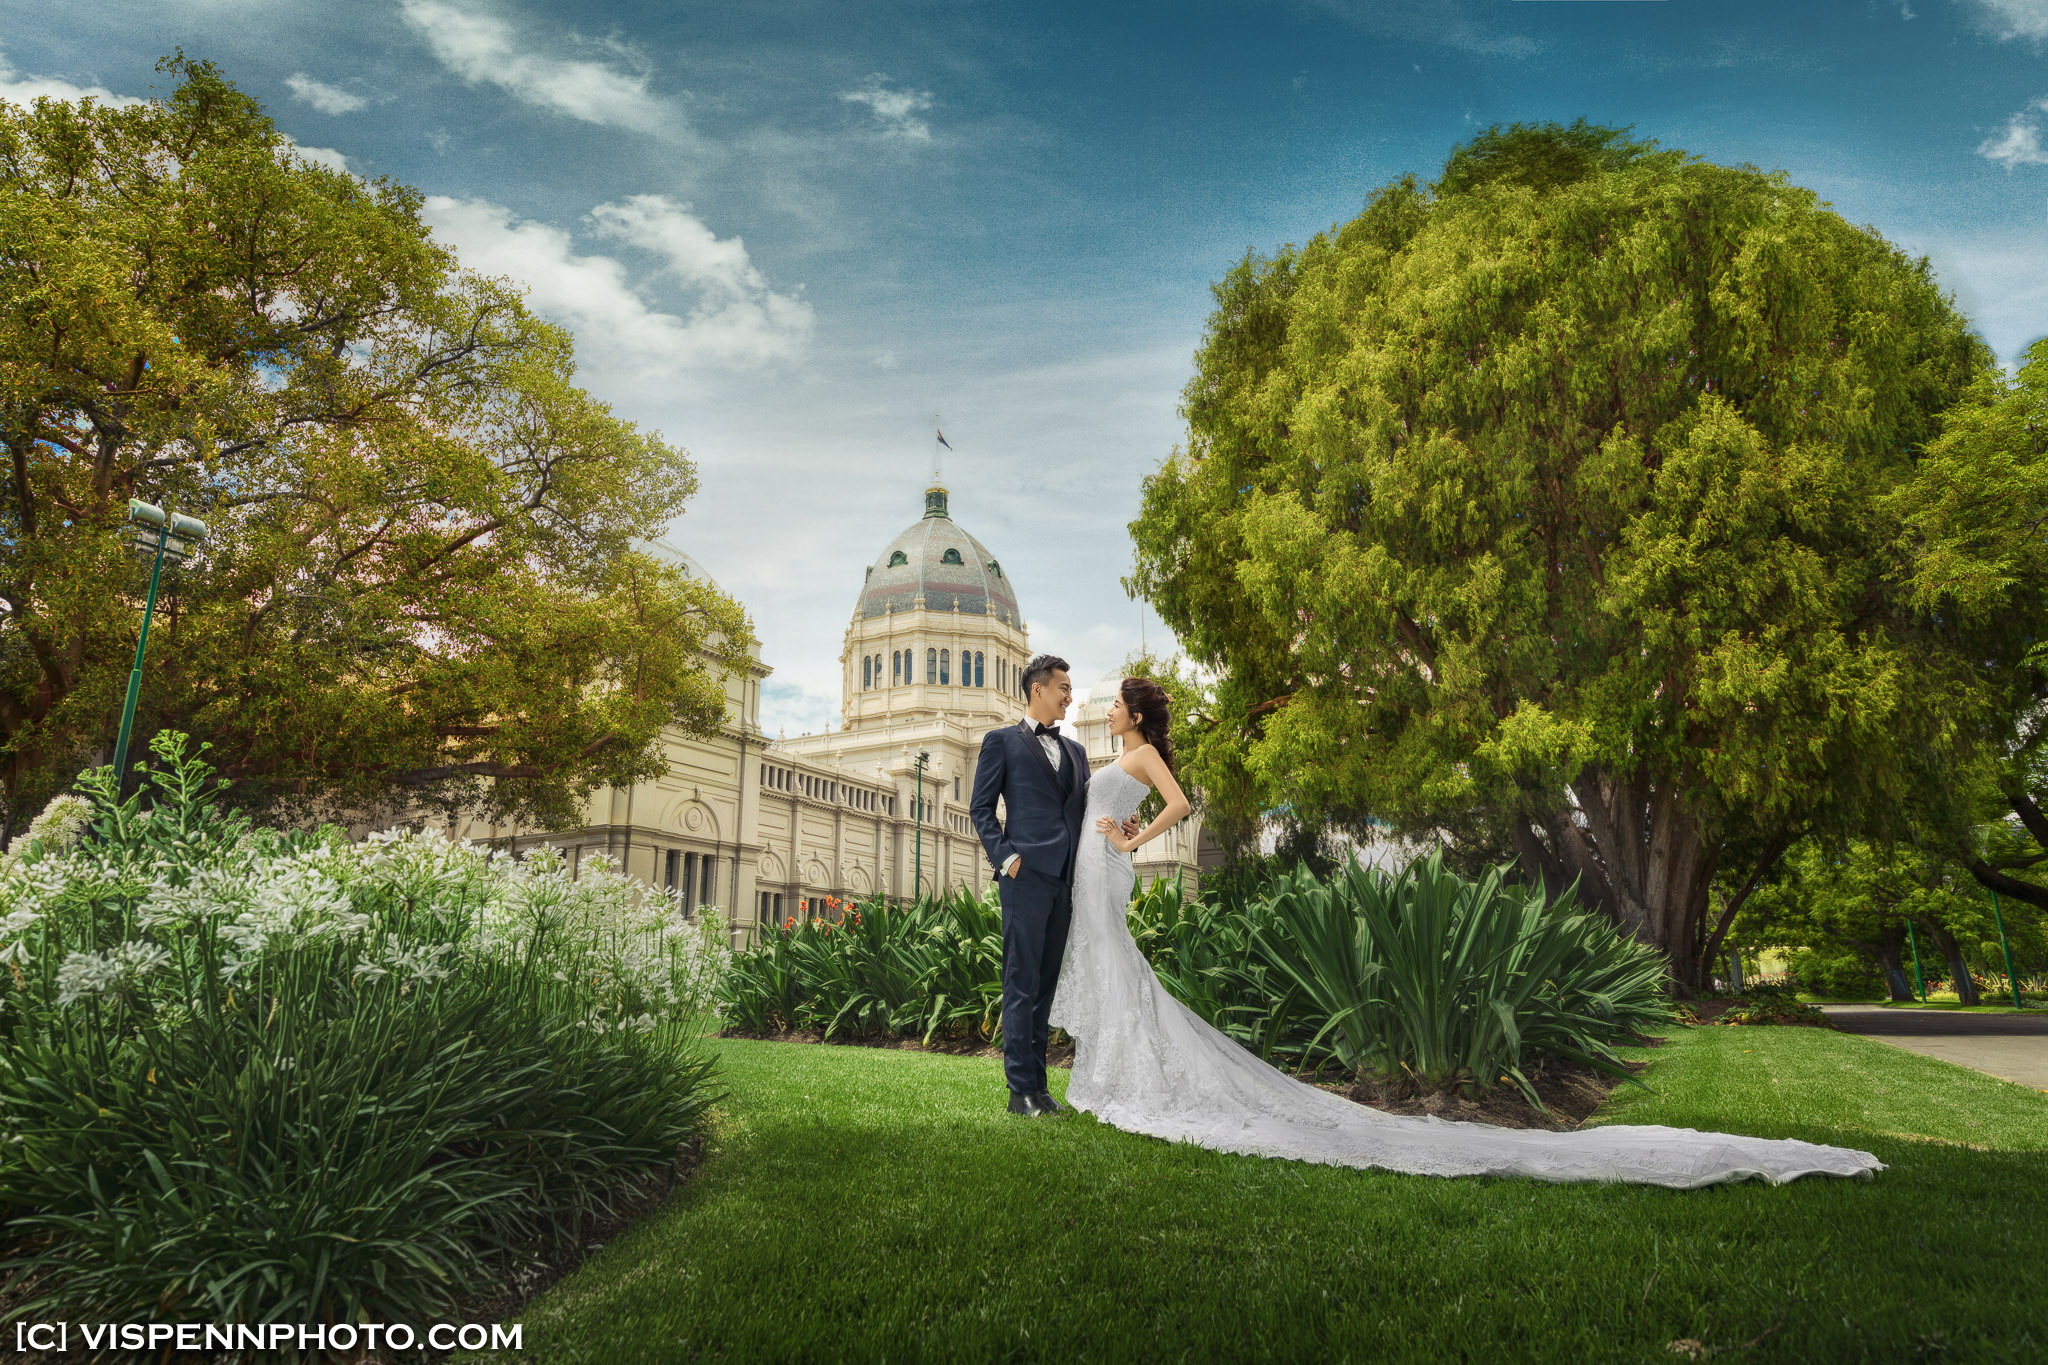 PRE WEDDING Photography Melbourne ZHPENN Kwok P1 0551